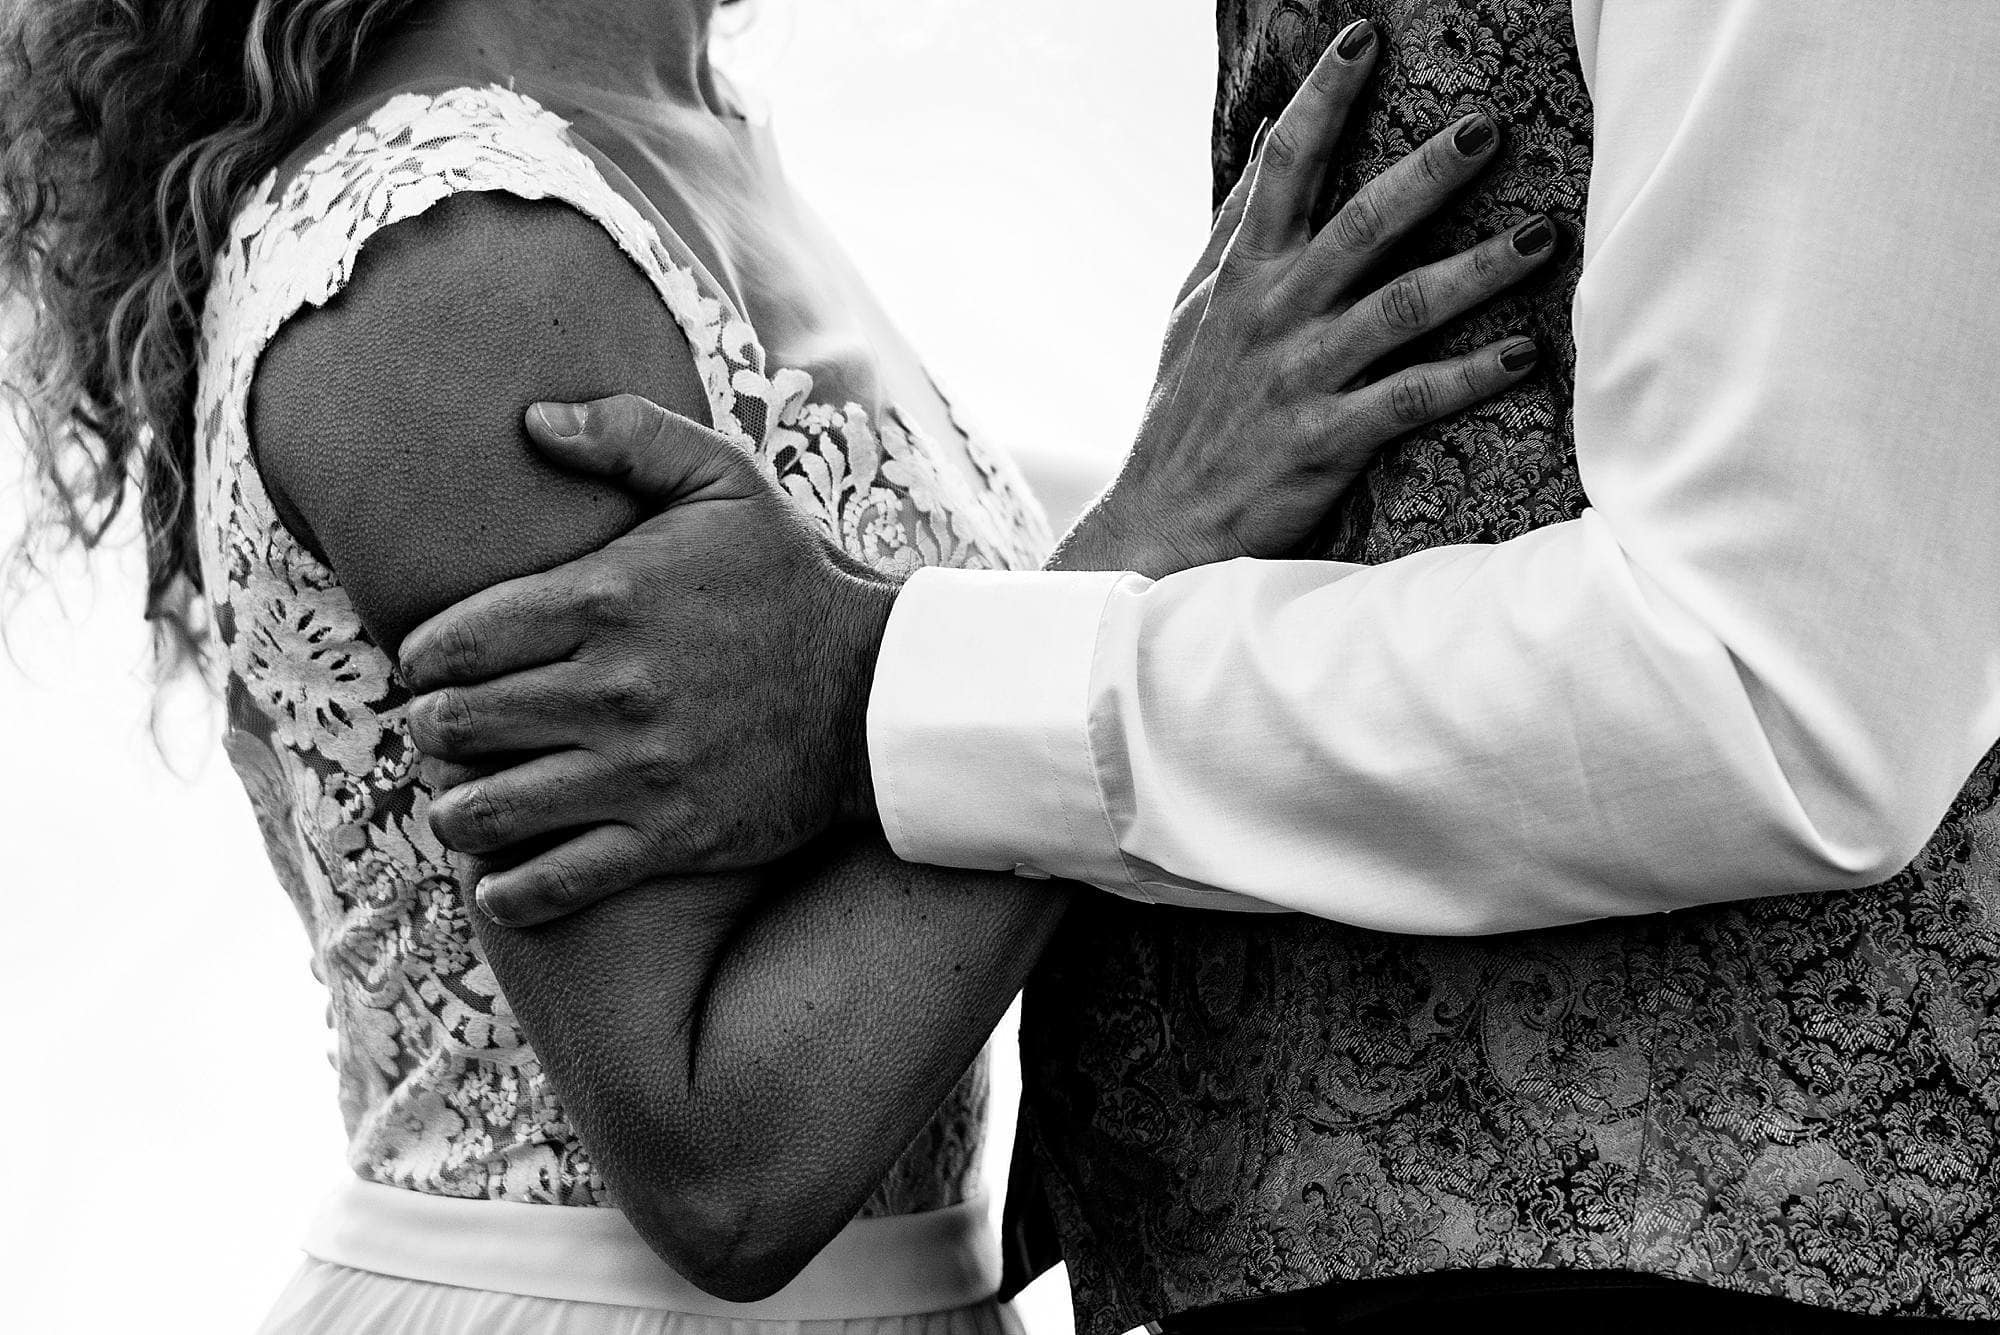 goosebumps on arms during wedding ceremony